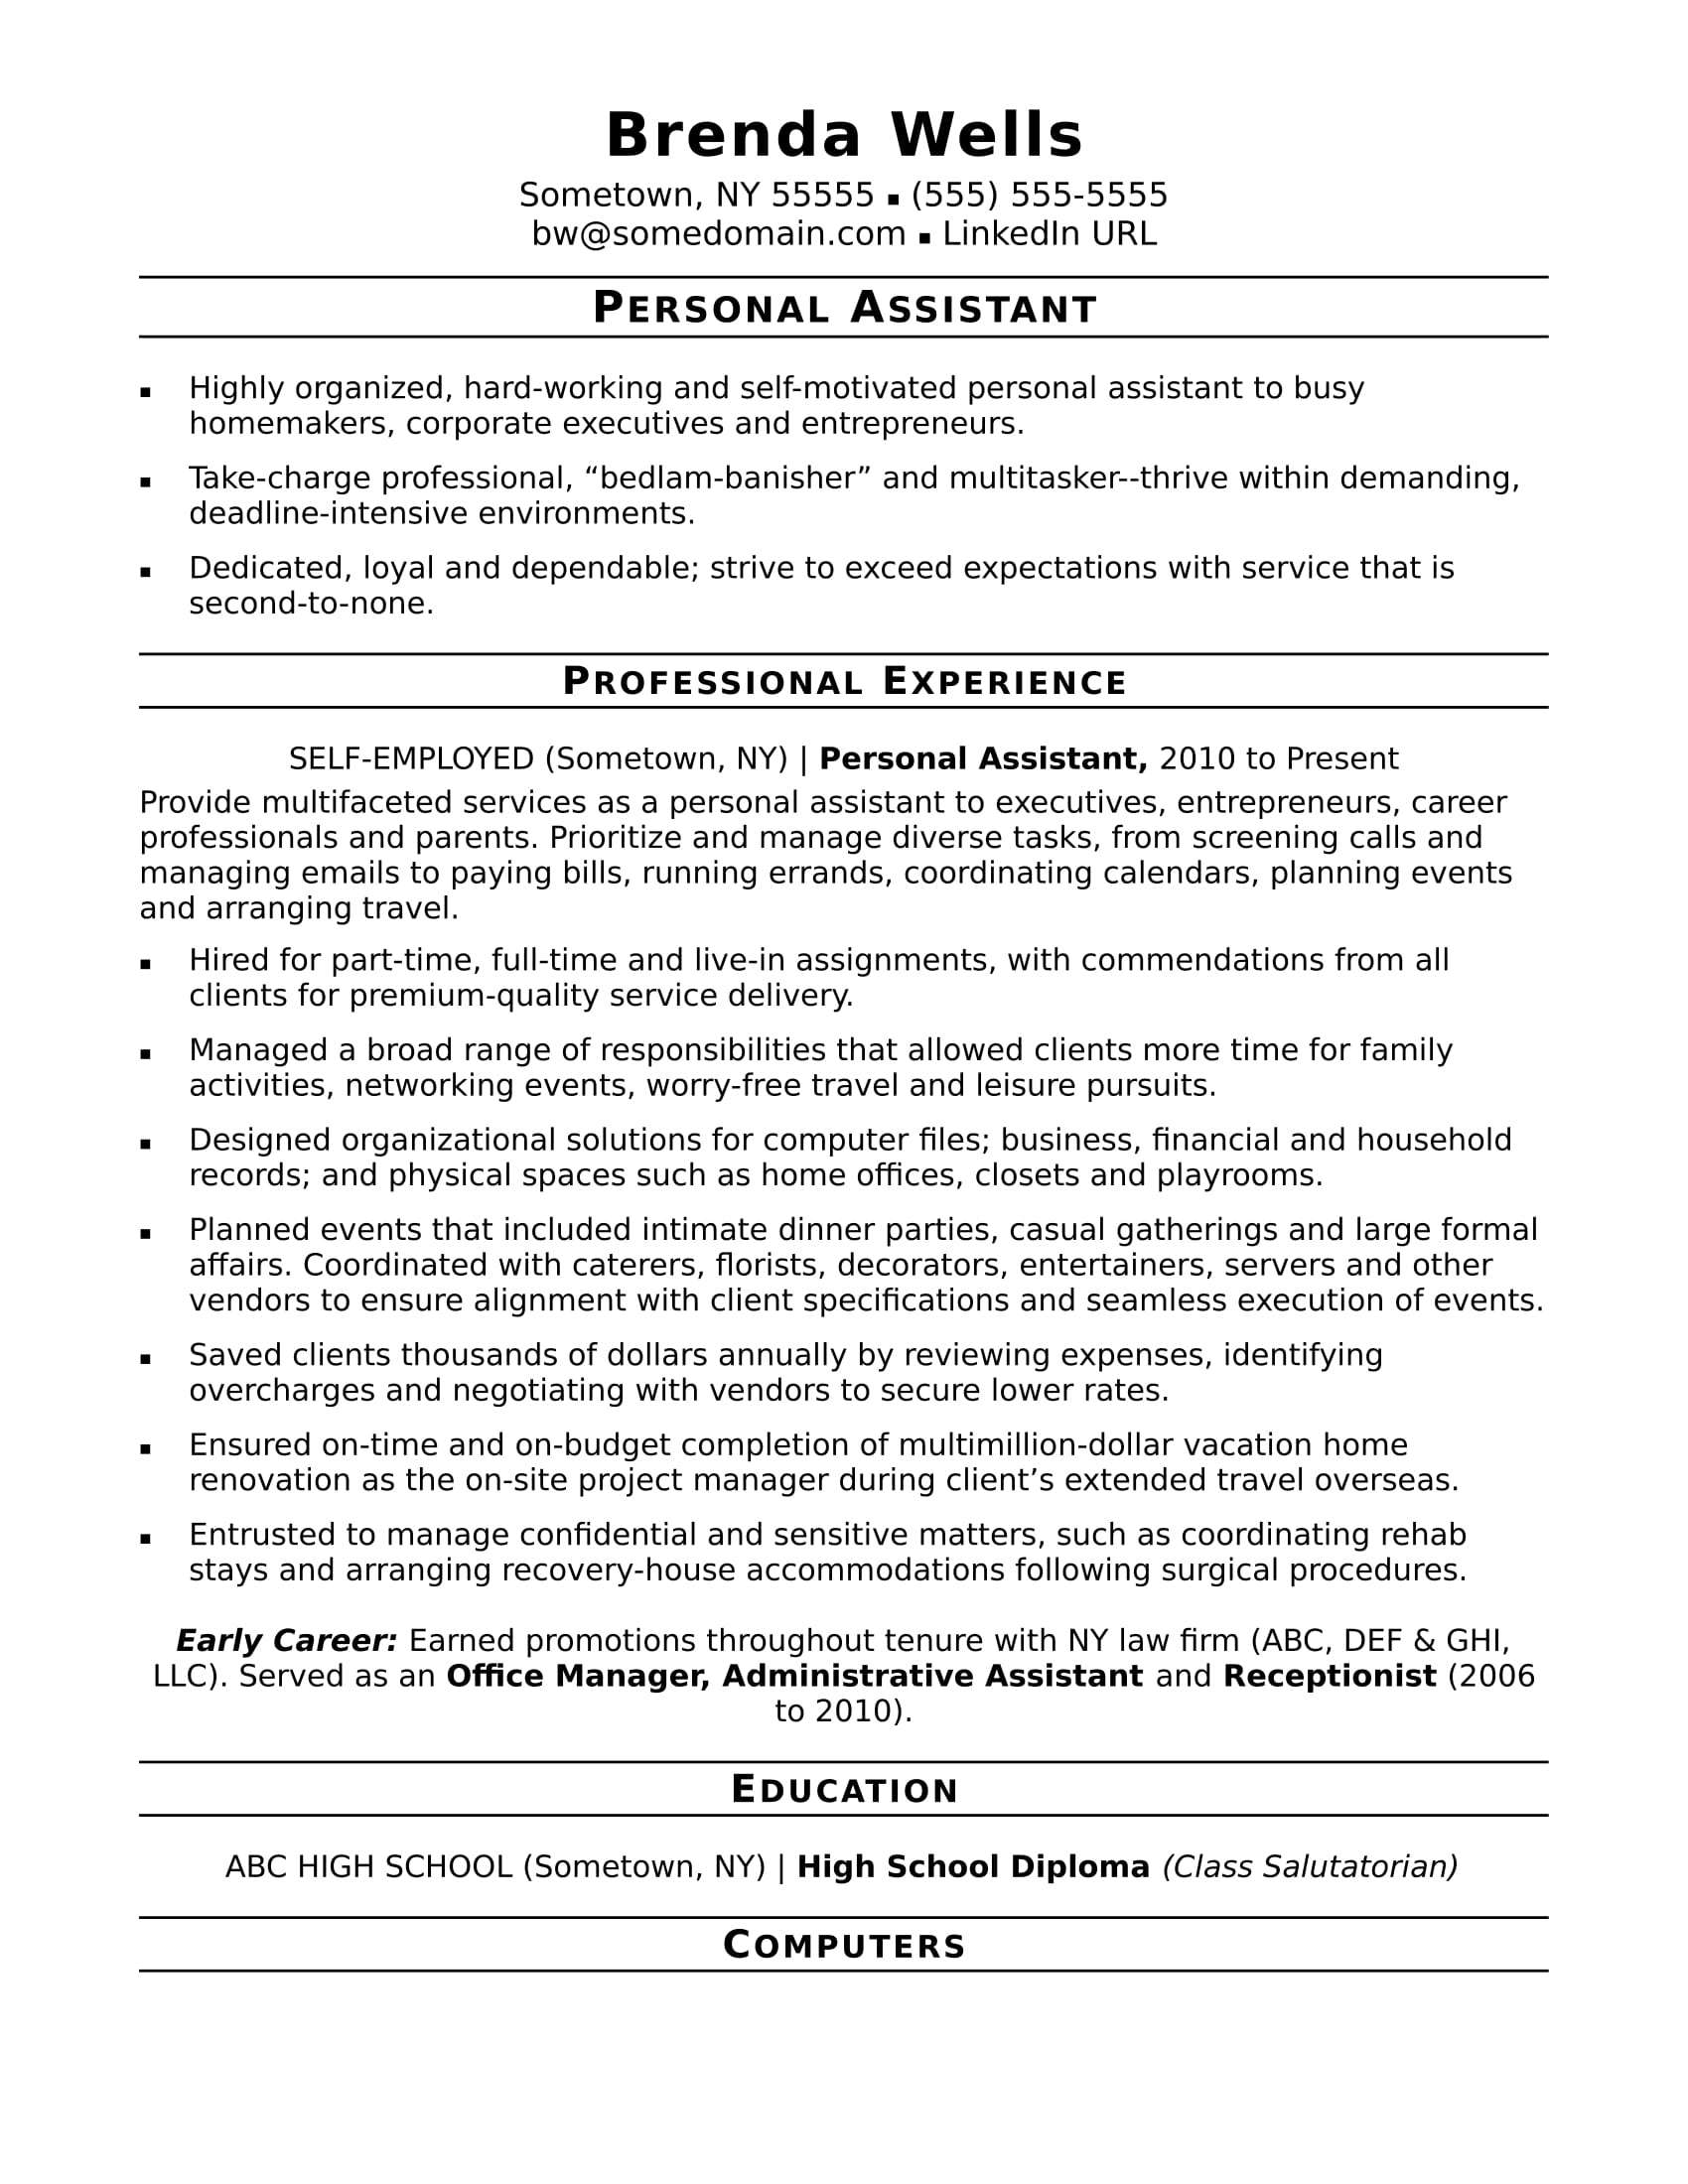 personal assistant resume sample monster with promotion example guest relations server Resume Resume With Promotion Example